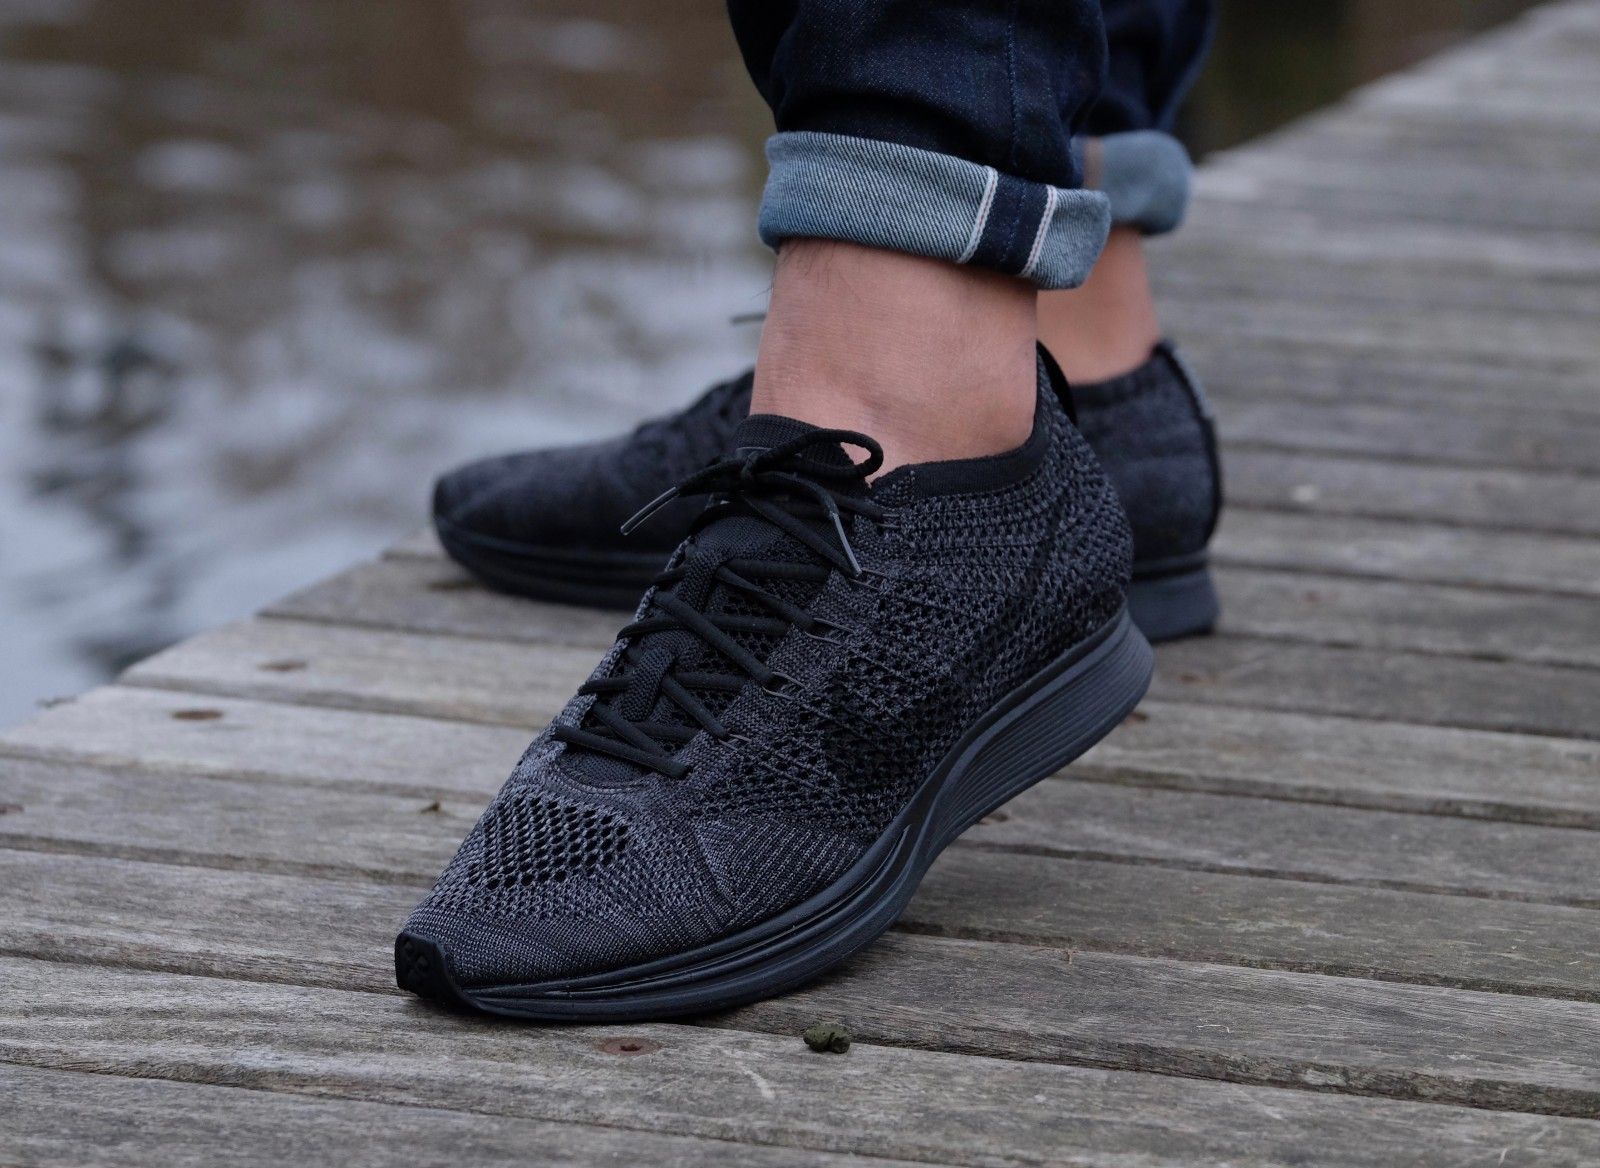 new product a6a04 a6035 ... Nike Flyknit Racer Black Black-Anthracite ...